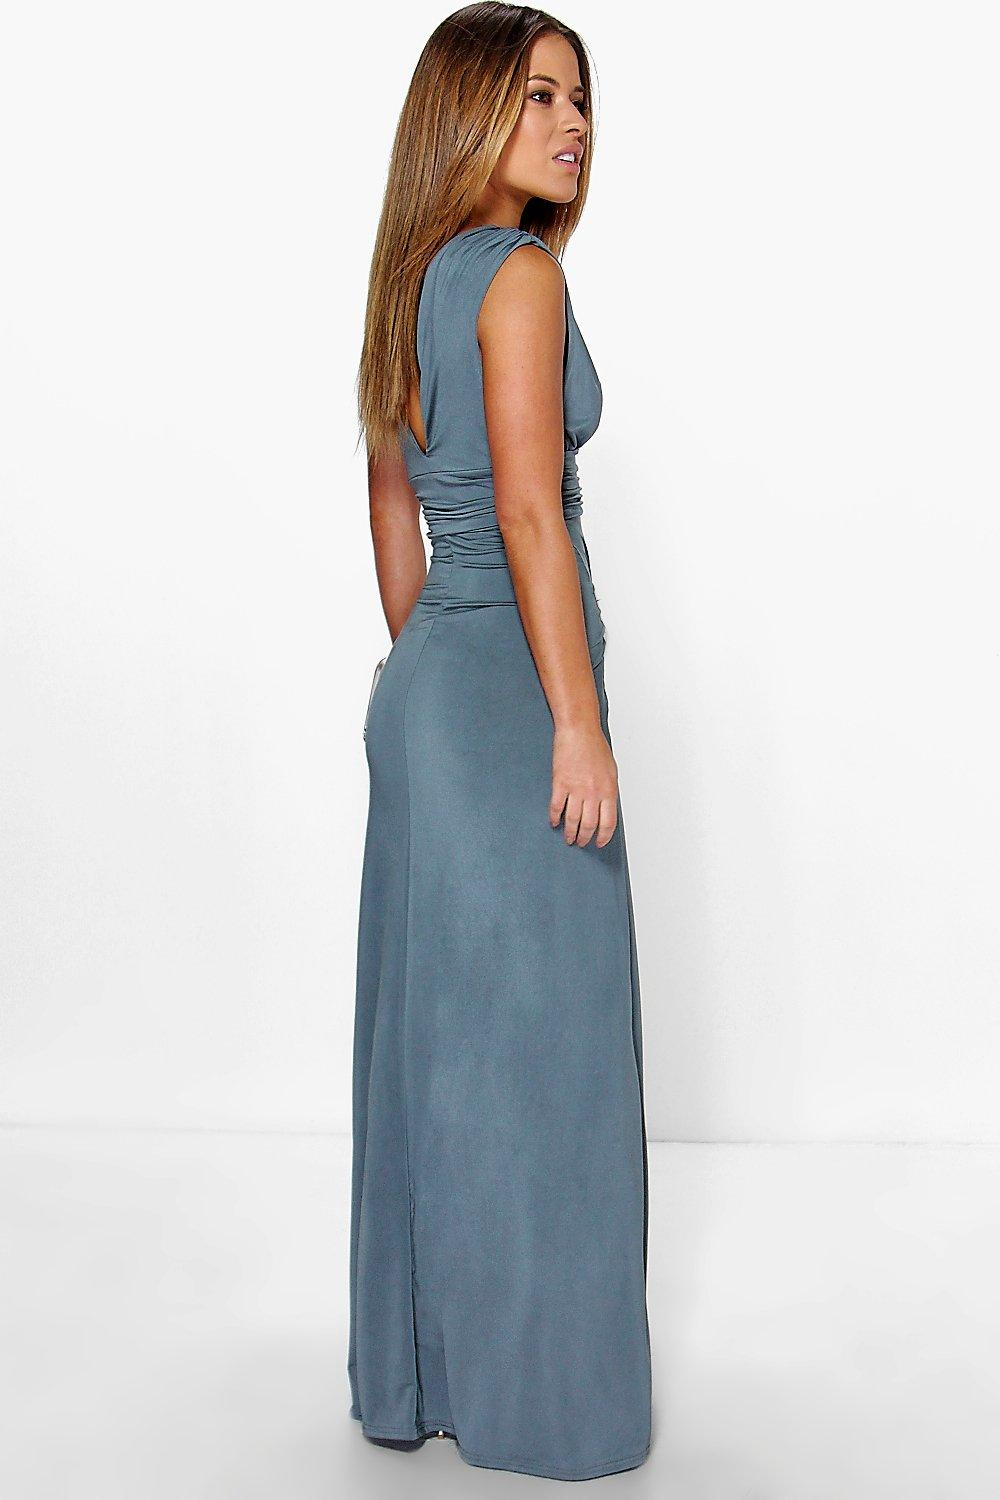 Shop for petite maxi dress online at Target. Free shipping on purchases over $35 and save 5% every day with your Target REDcard.